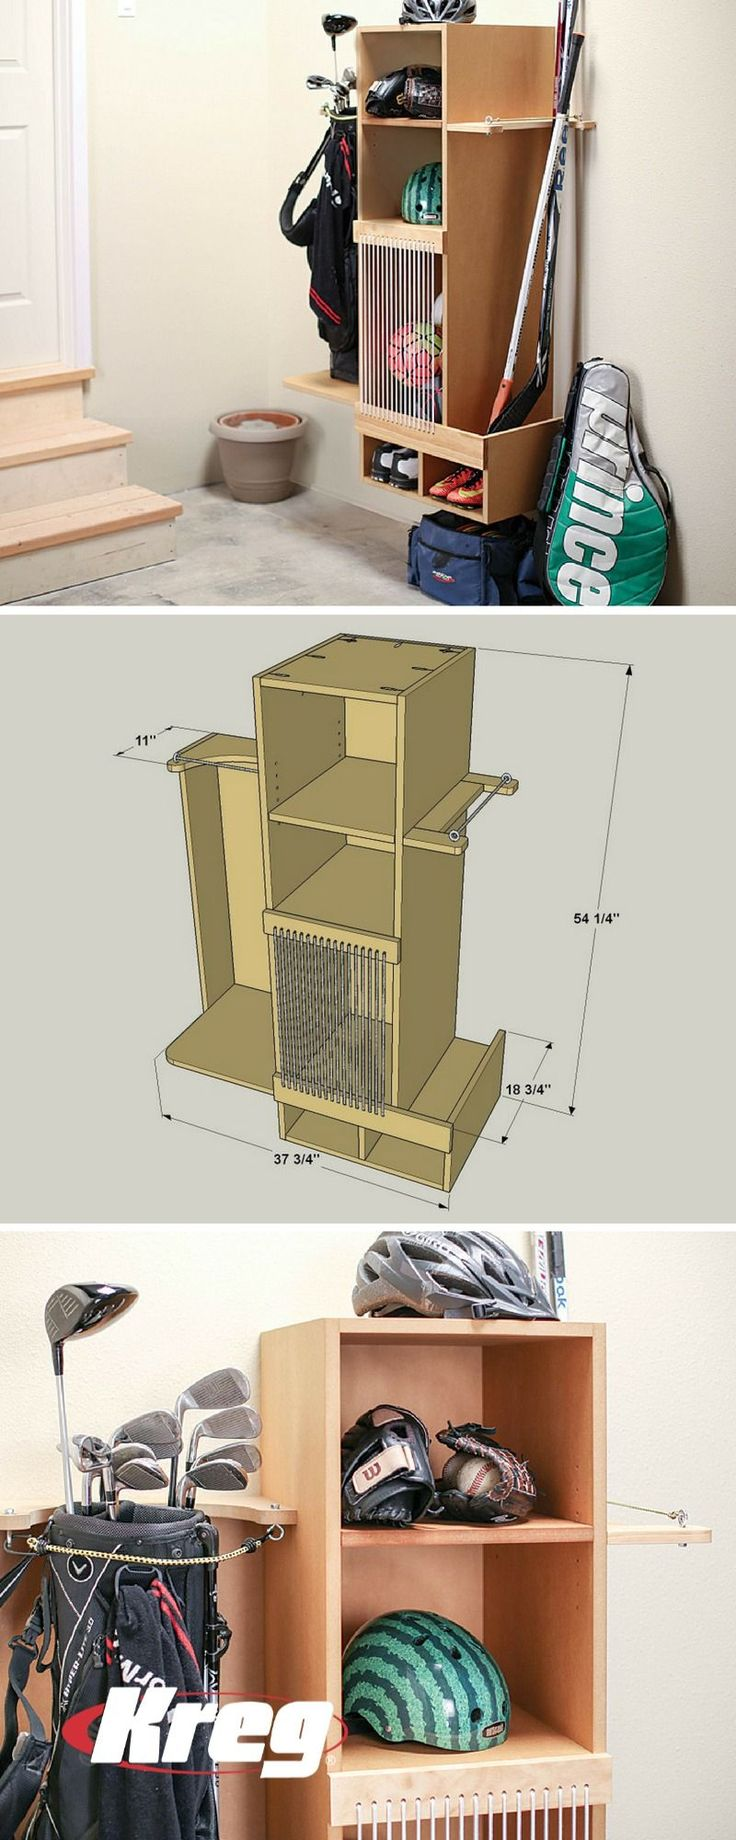 FREE PROJECT PLAN How to Build DIY Sports Equipment